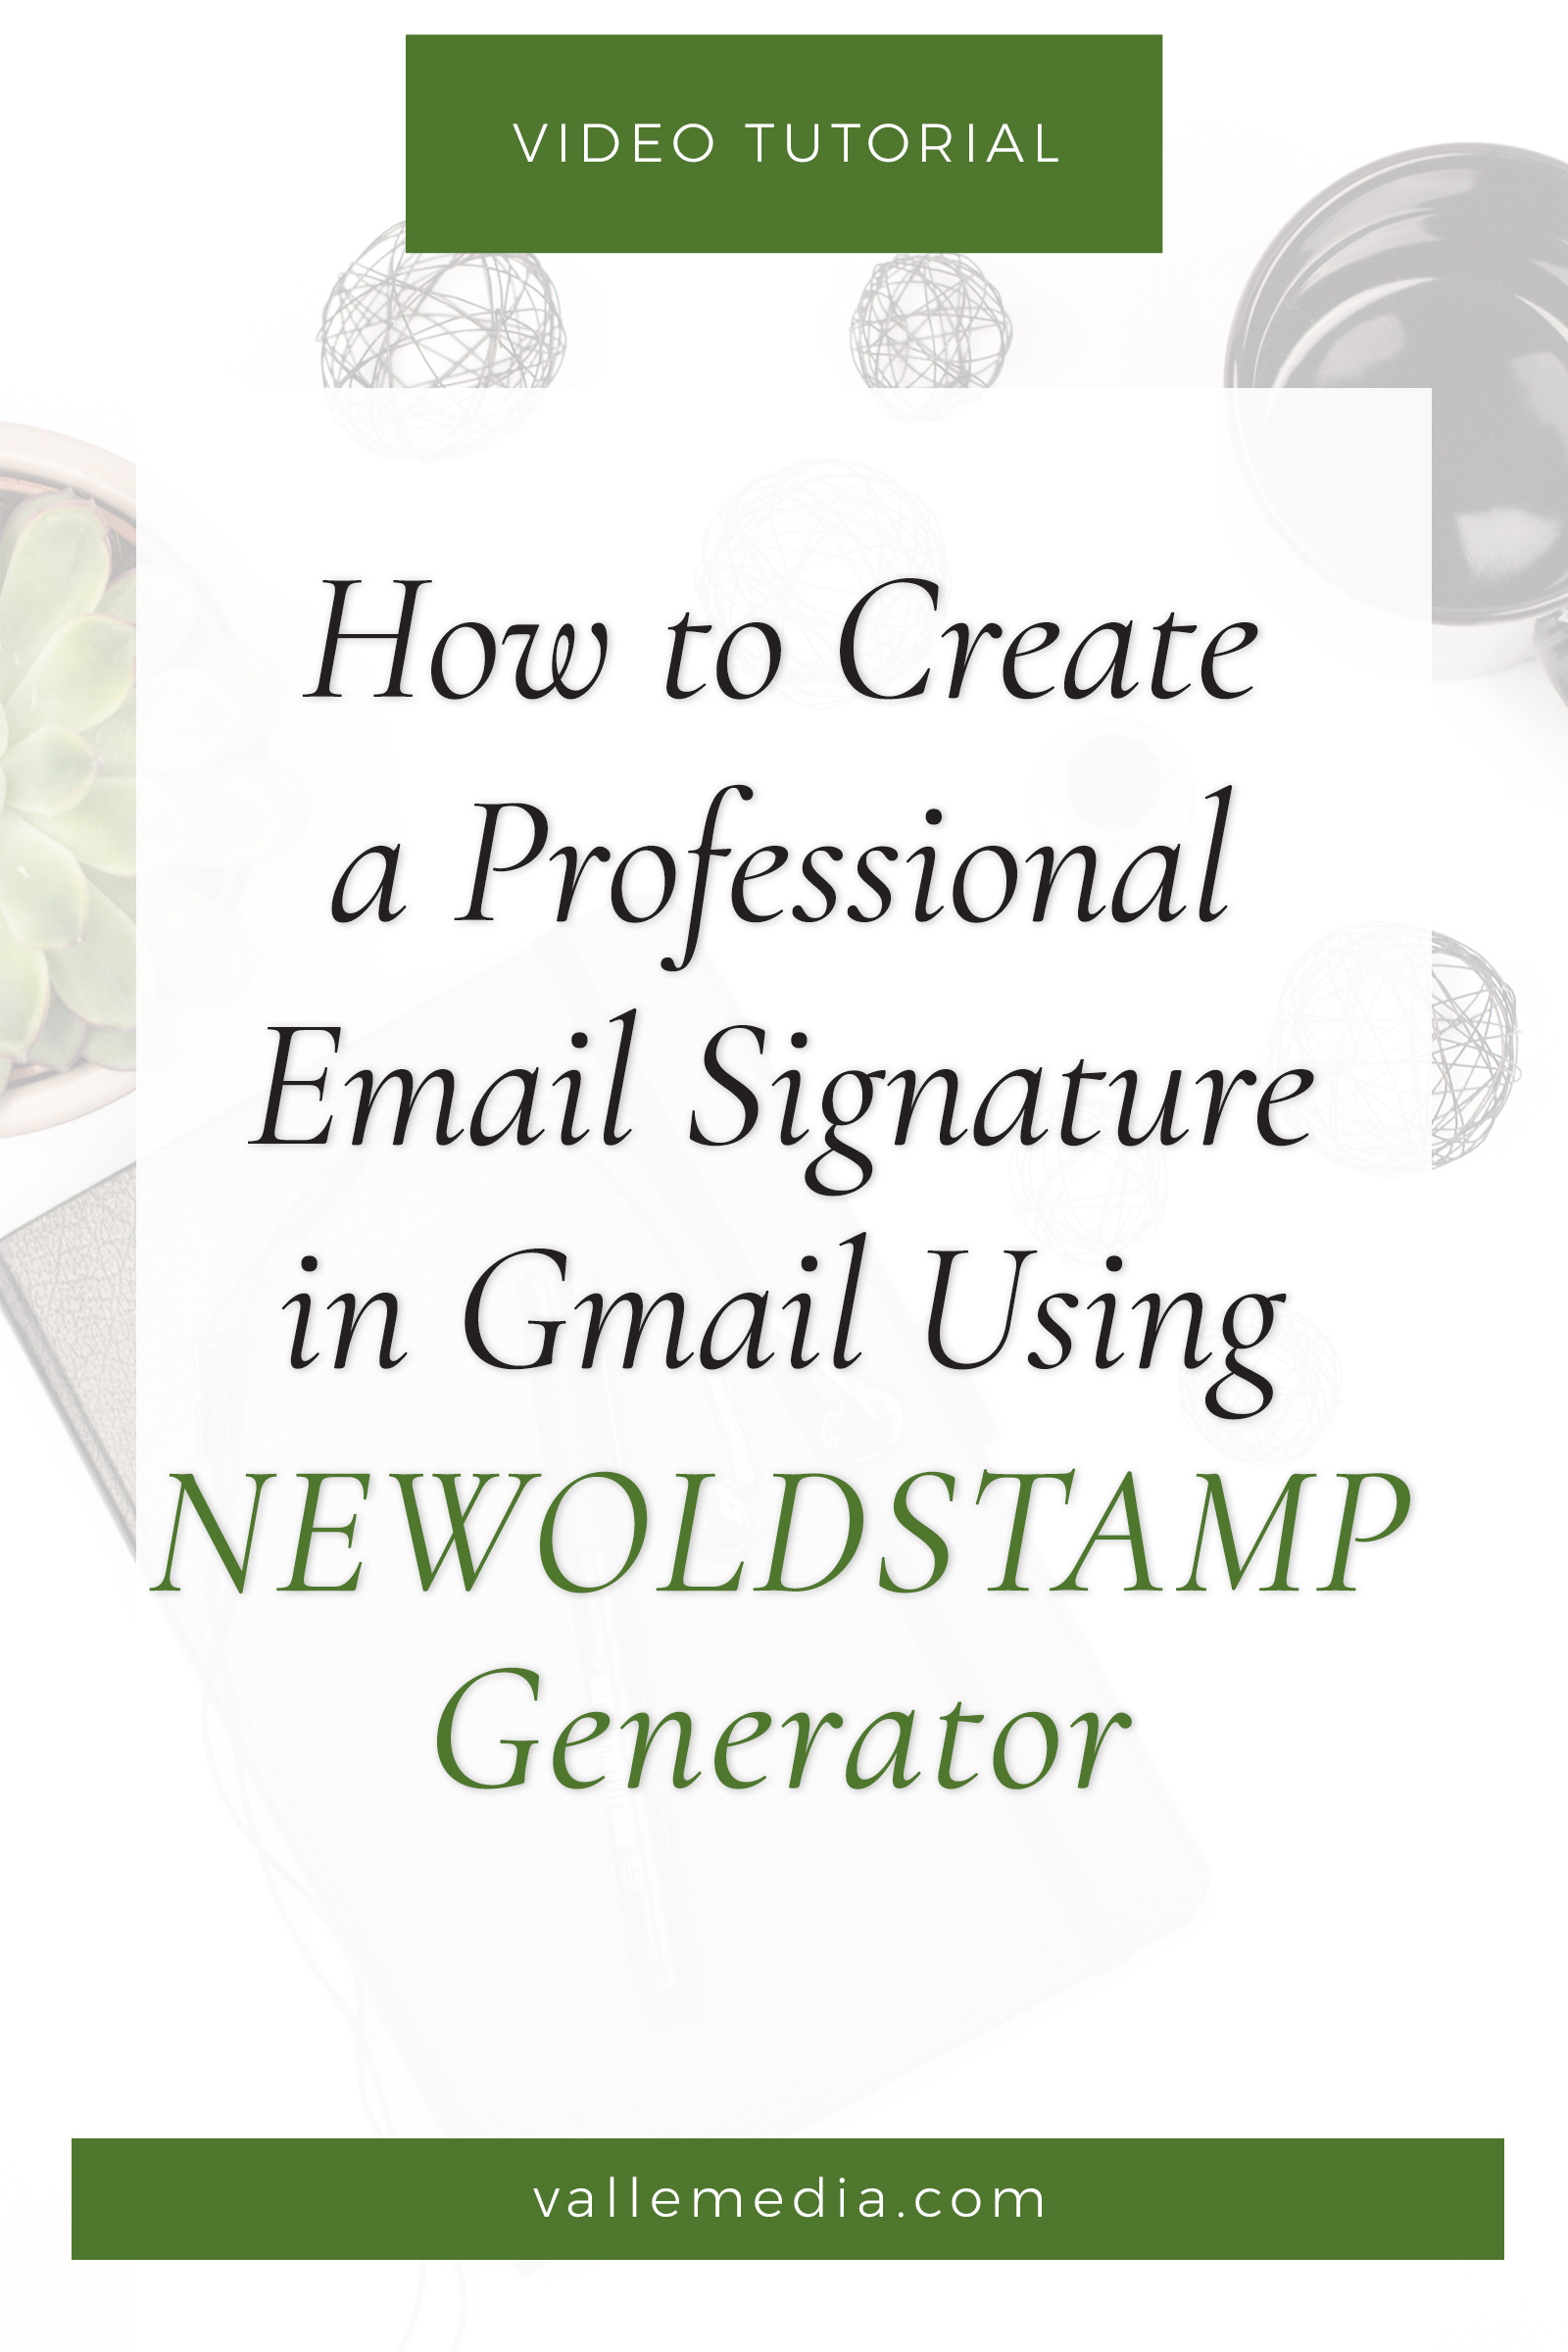 I was really getting tired of the same old boring email signature. Then I found NEWOLDSTAMP and built a professional-grade email signature super easy in less than 10 minutes.